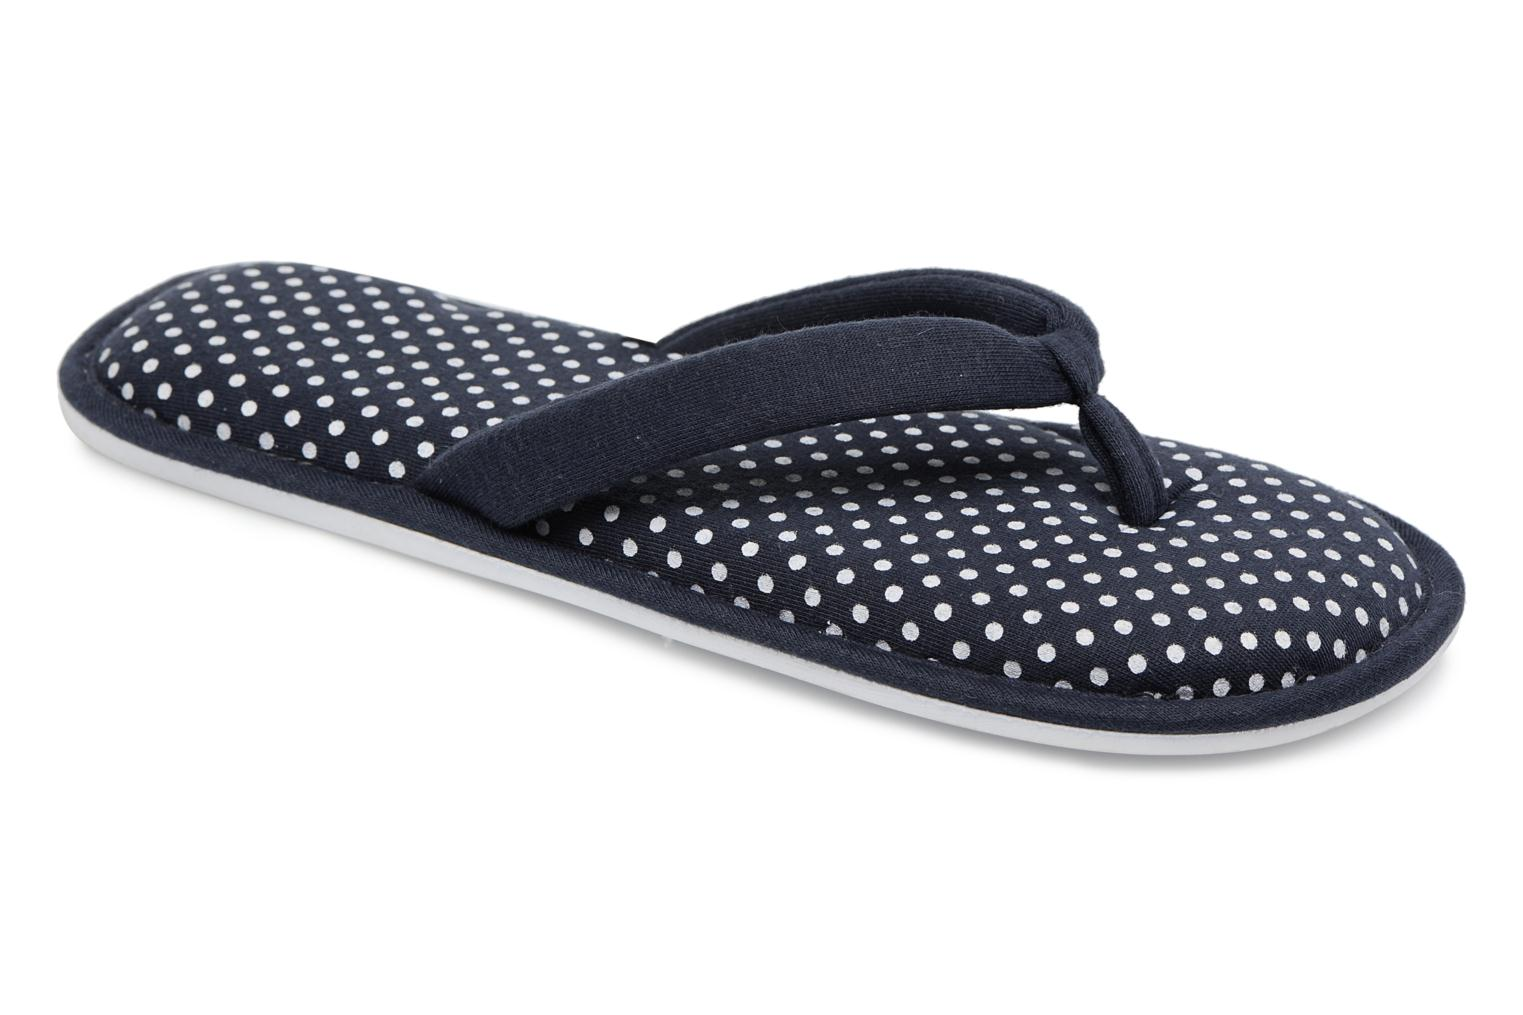 Chaussons Mules Femme Poids Marine